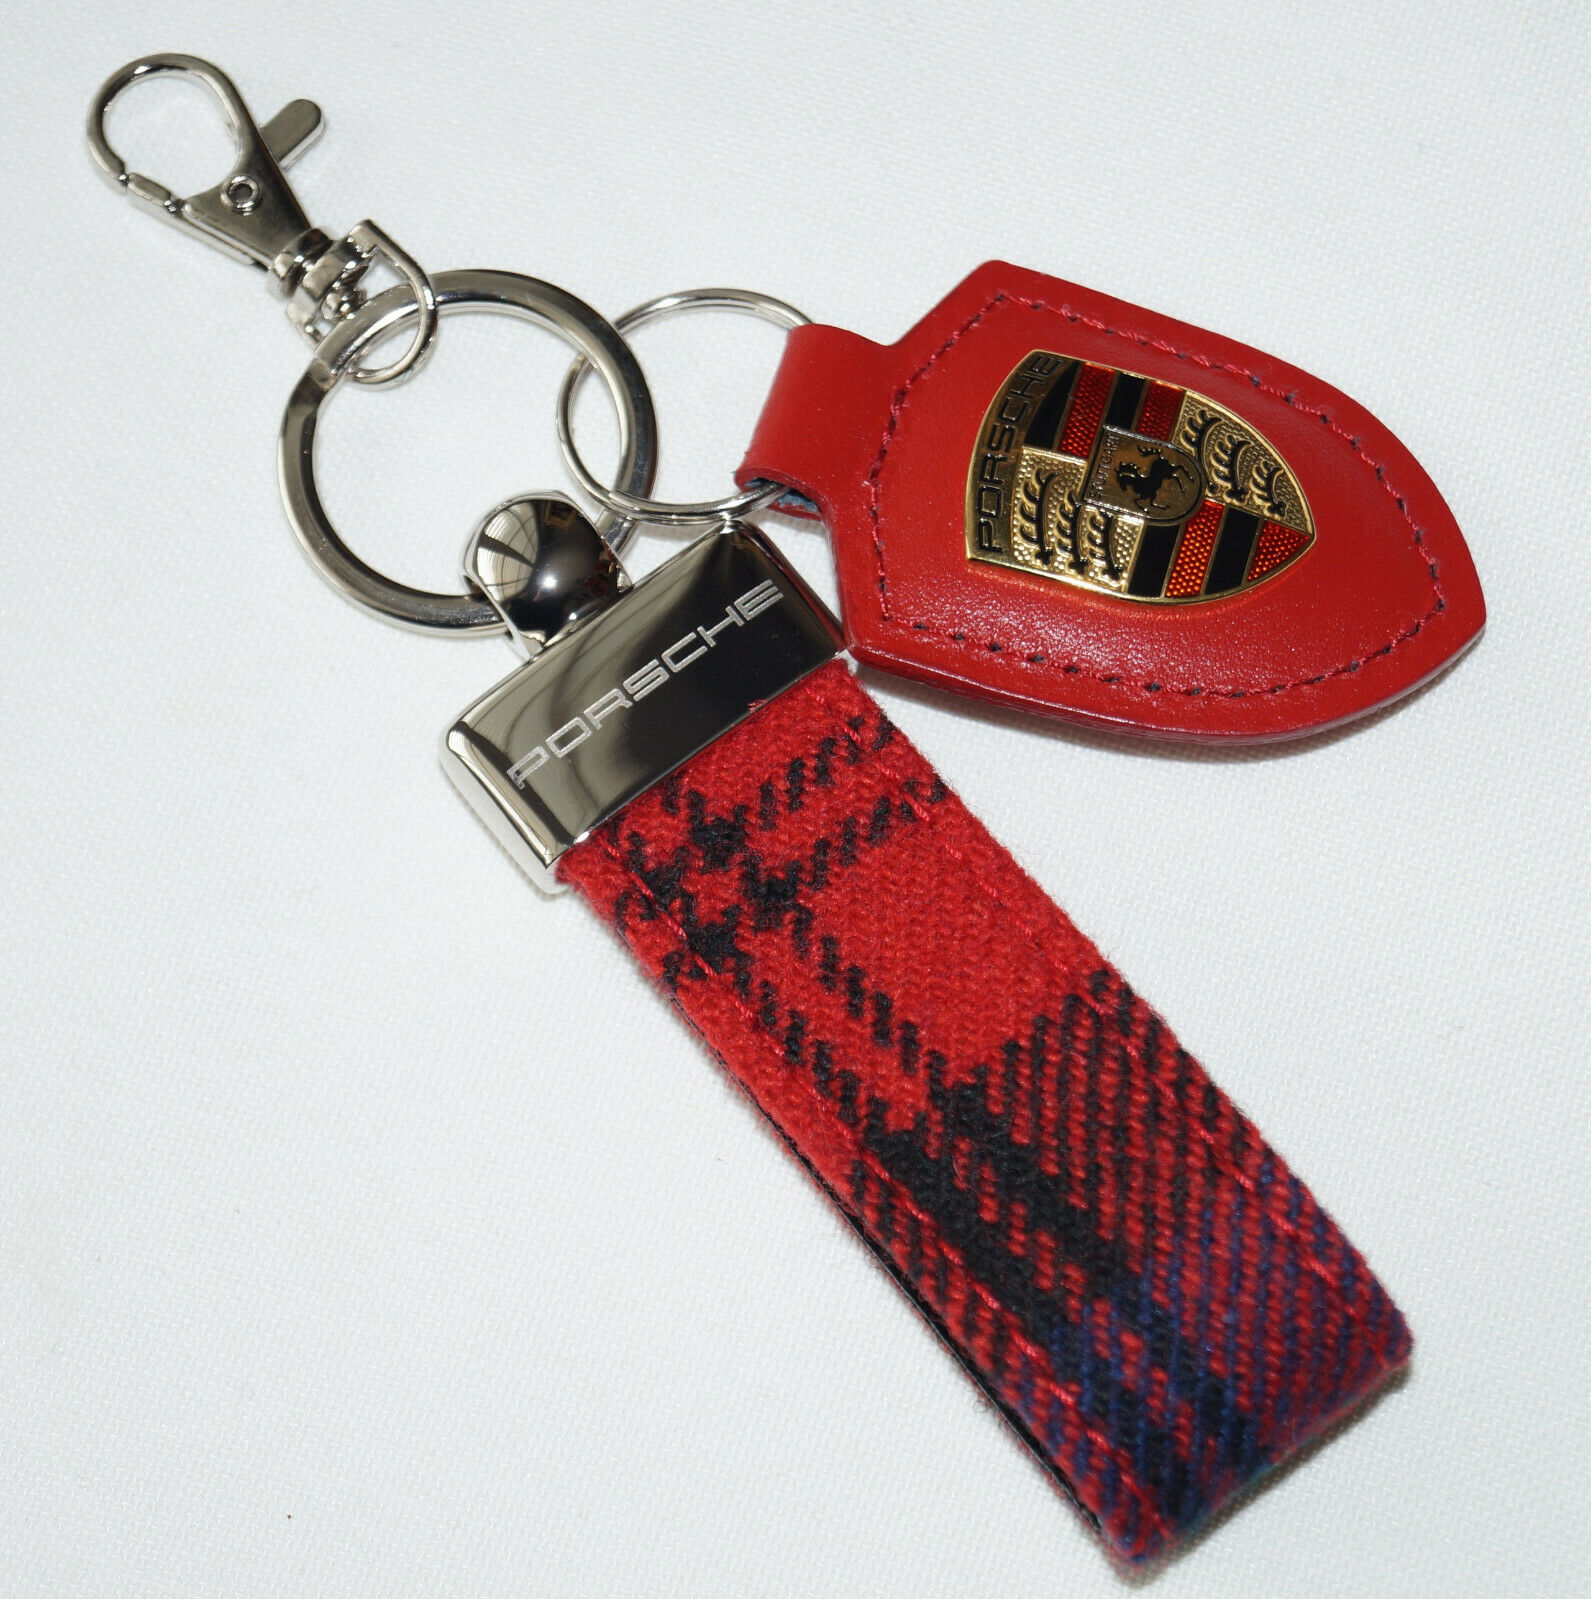 Details about Authentic Porsche Design Key Ring / Bag Charm Chain / Red /  Key Holder